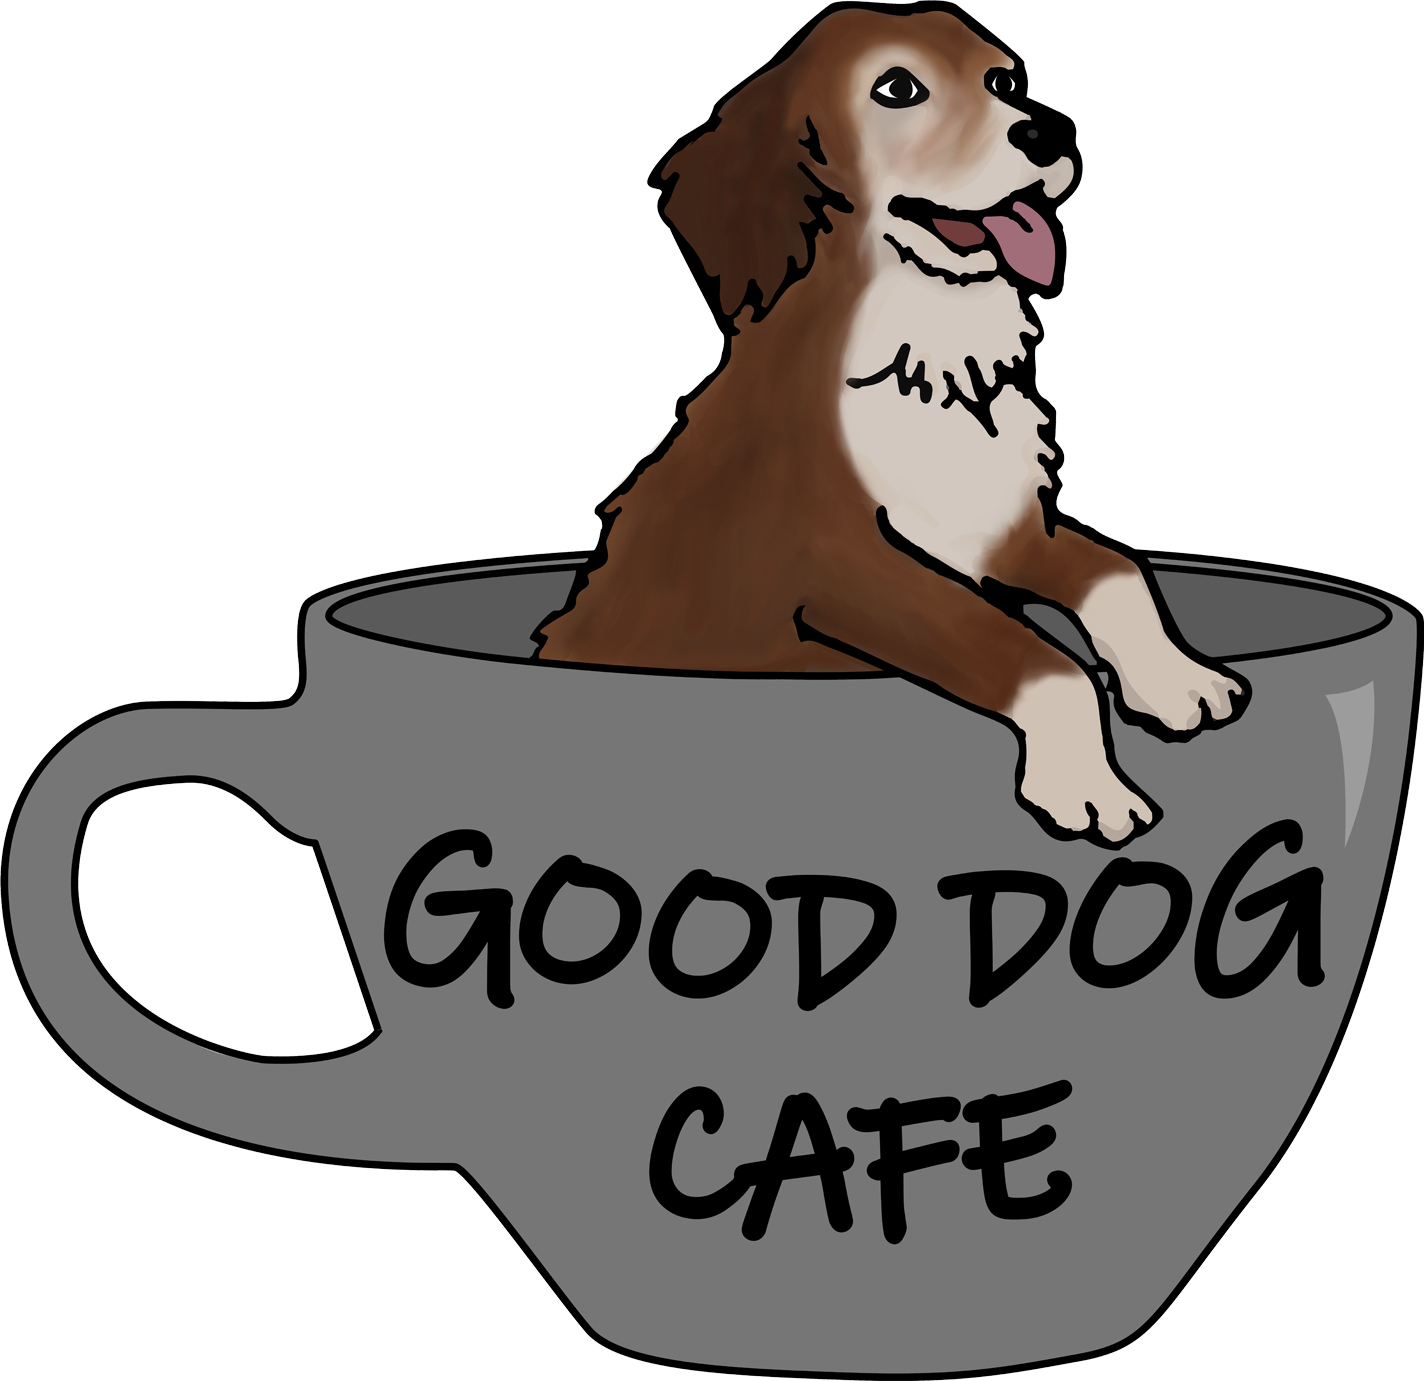 GOOD-DOG-CAFE-CUP-LOGO-WITHOUT-BACKGROUND.jpg